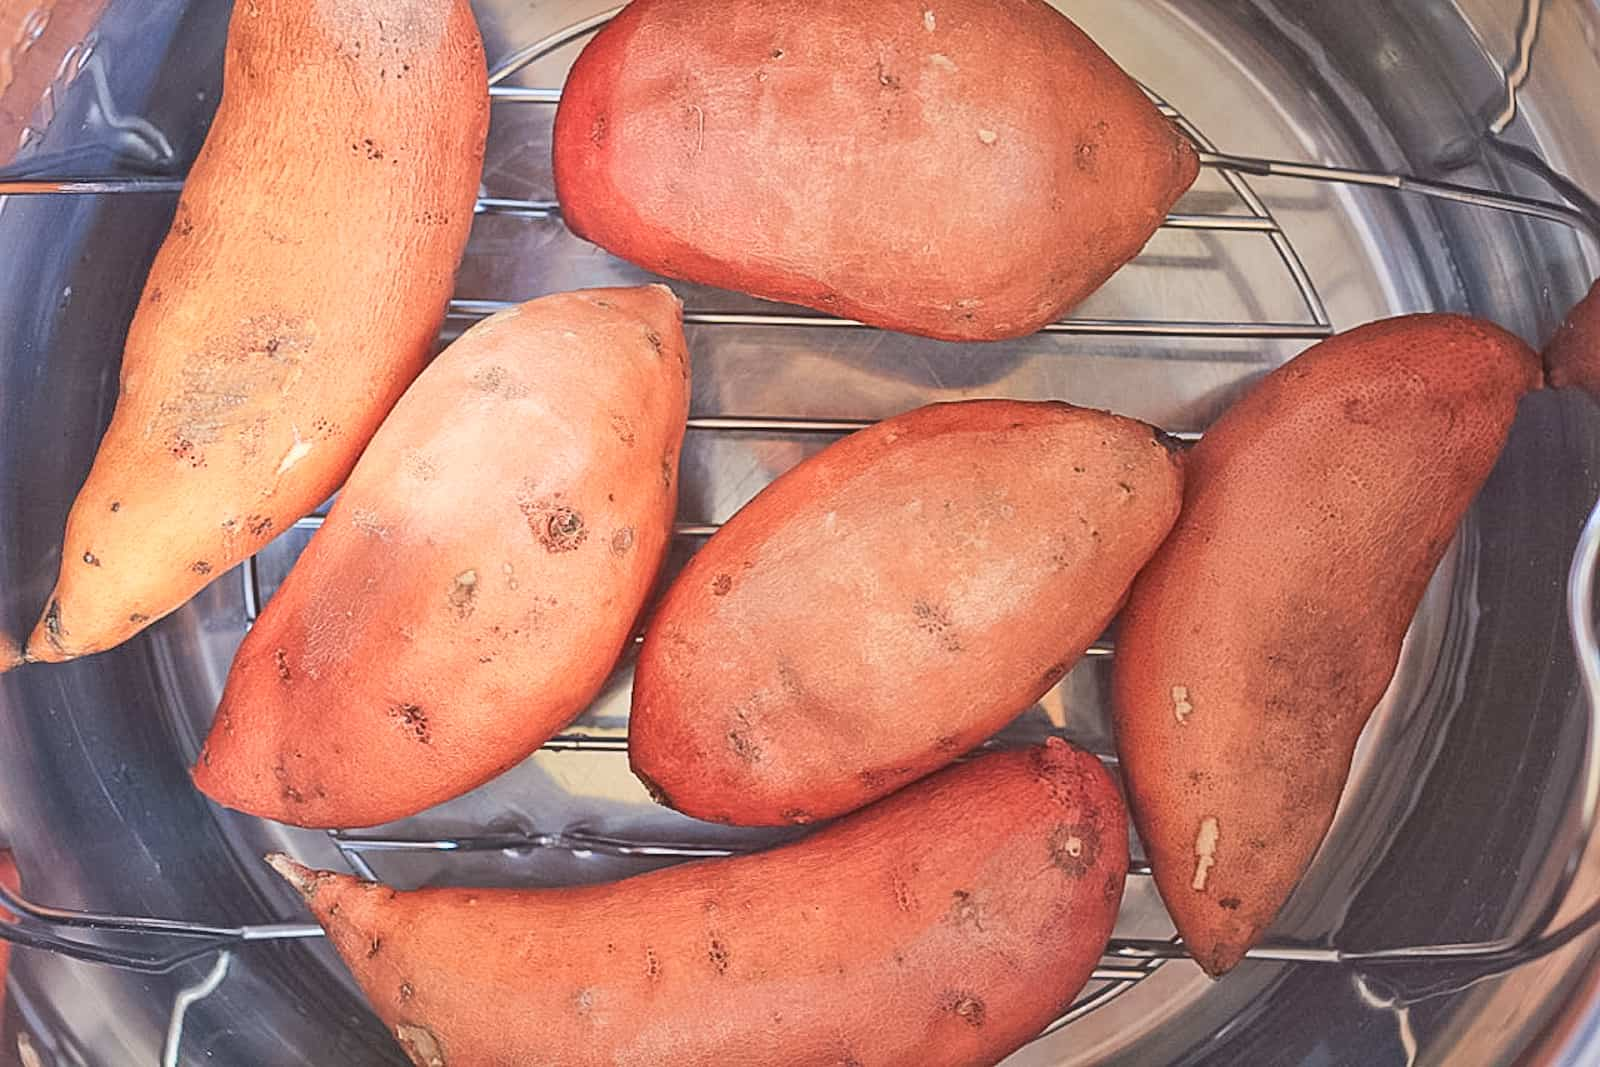 Uncooked sweet potatoes inside the instant pot on the trivet.